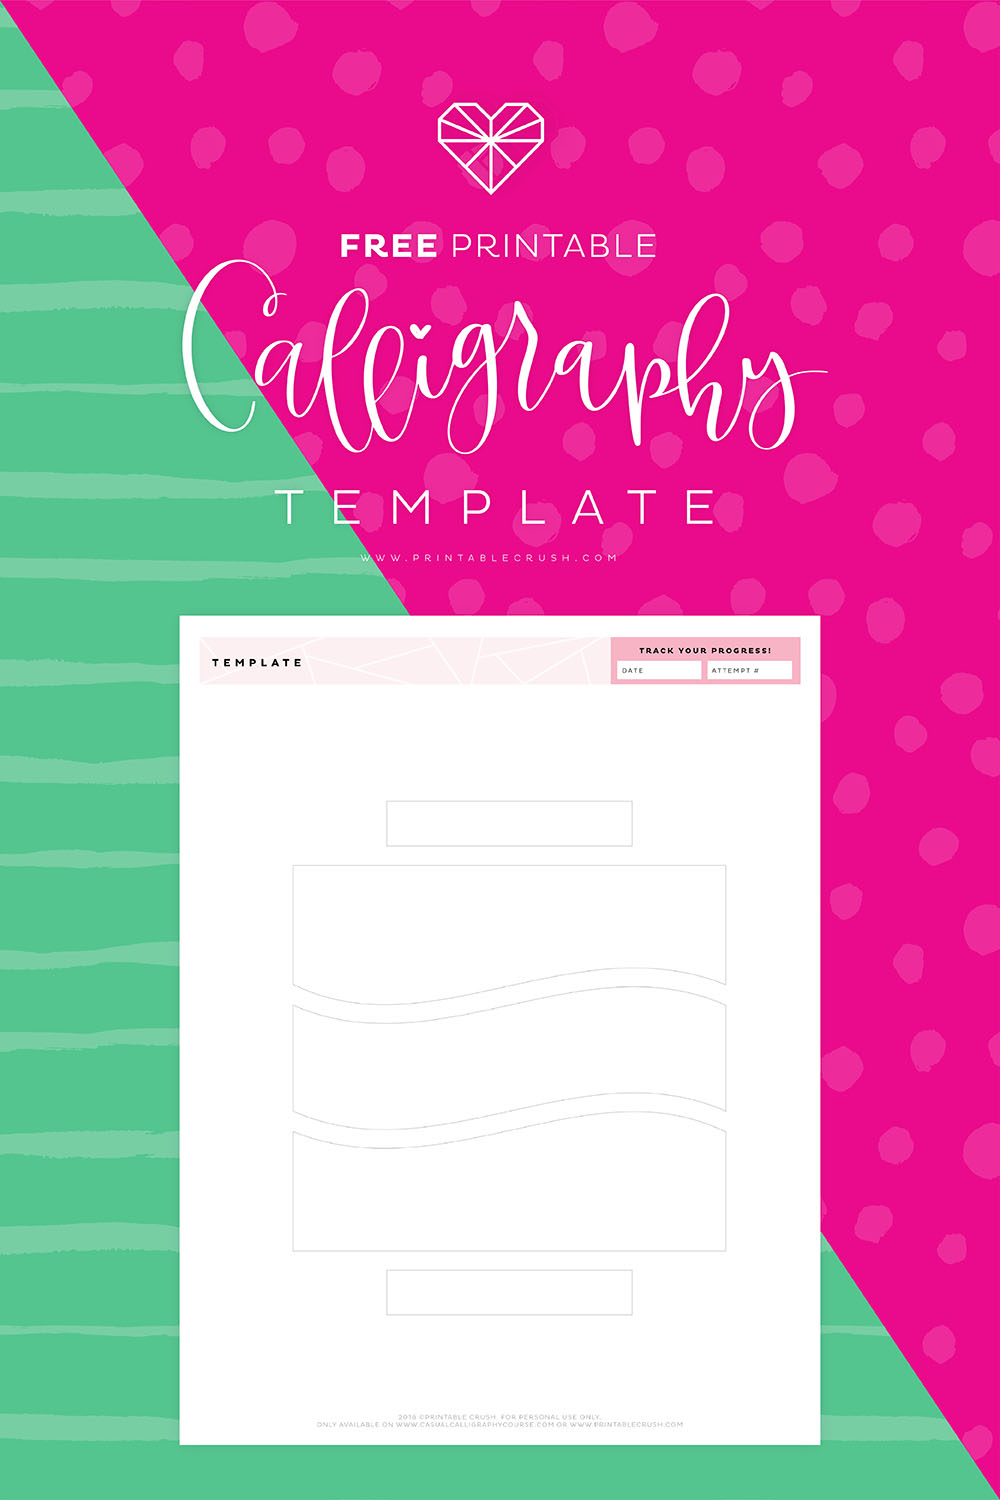 Get those calligraphy layout ideas rolling with this FREE Printable Calligraphy Template! You can use this with calligraphy pens or brush pens.